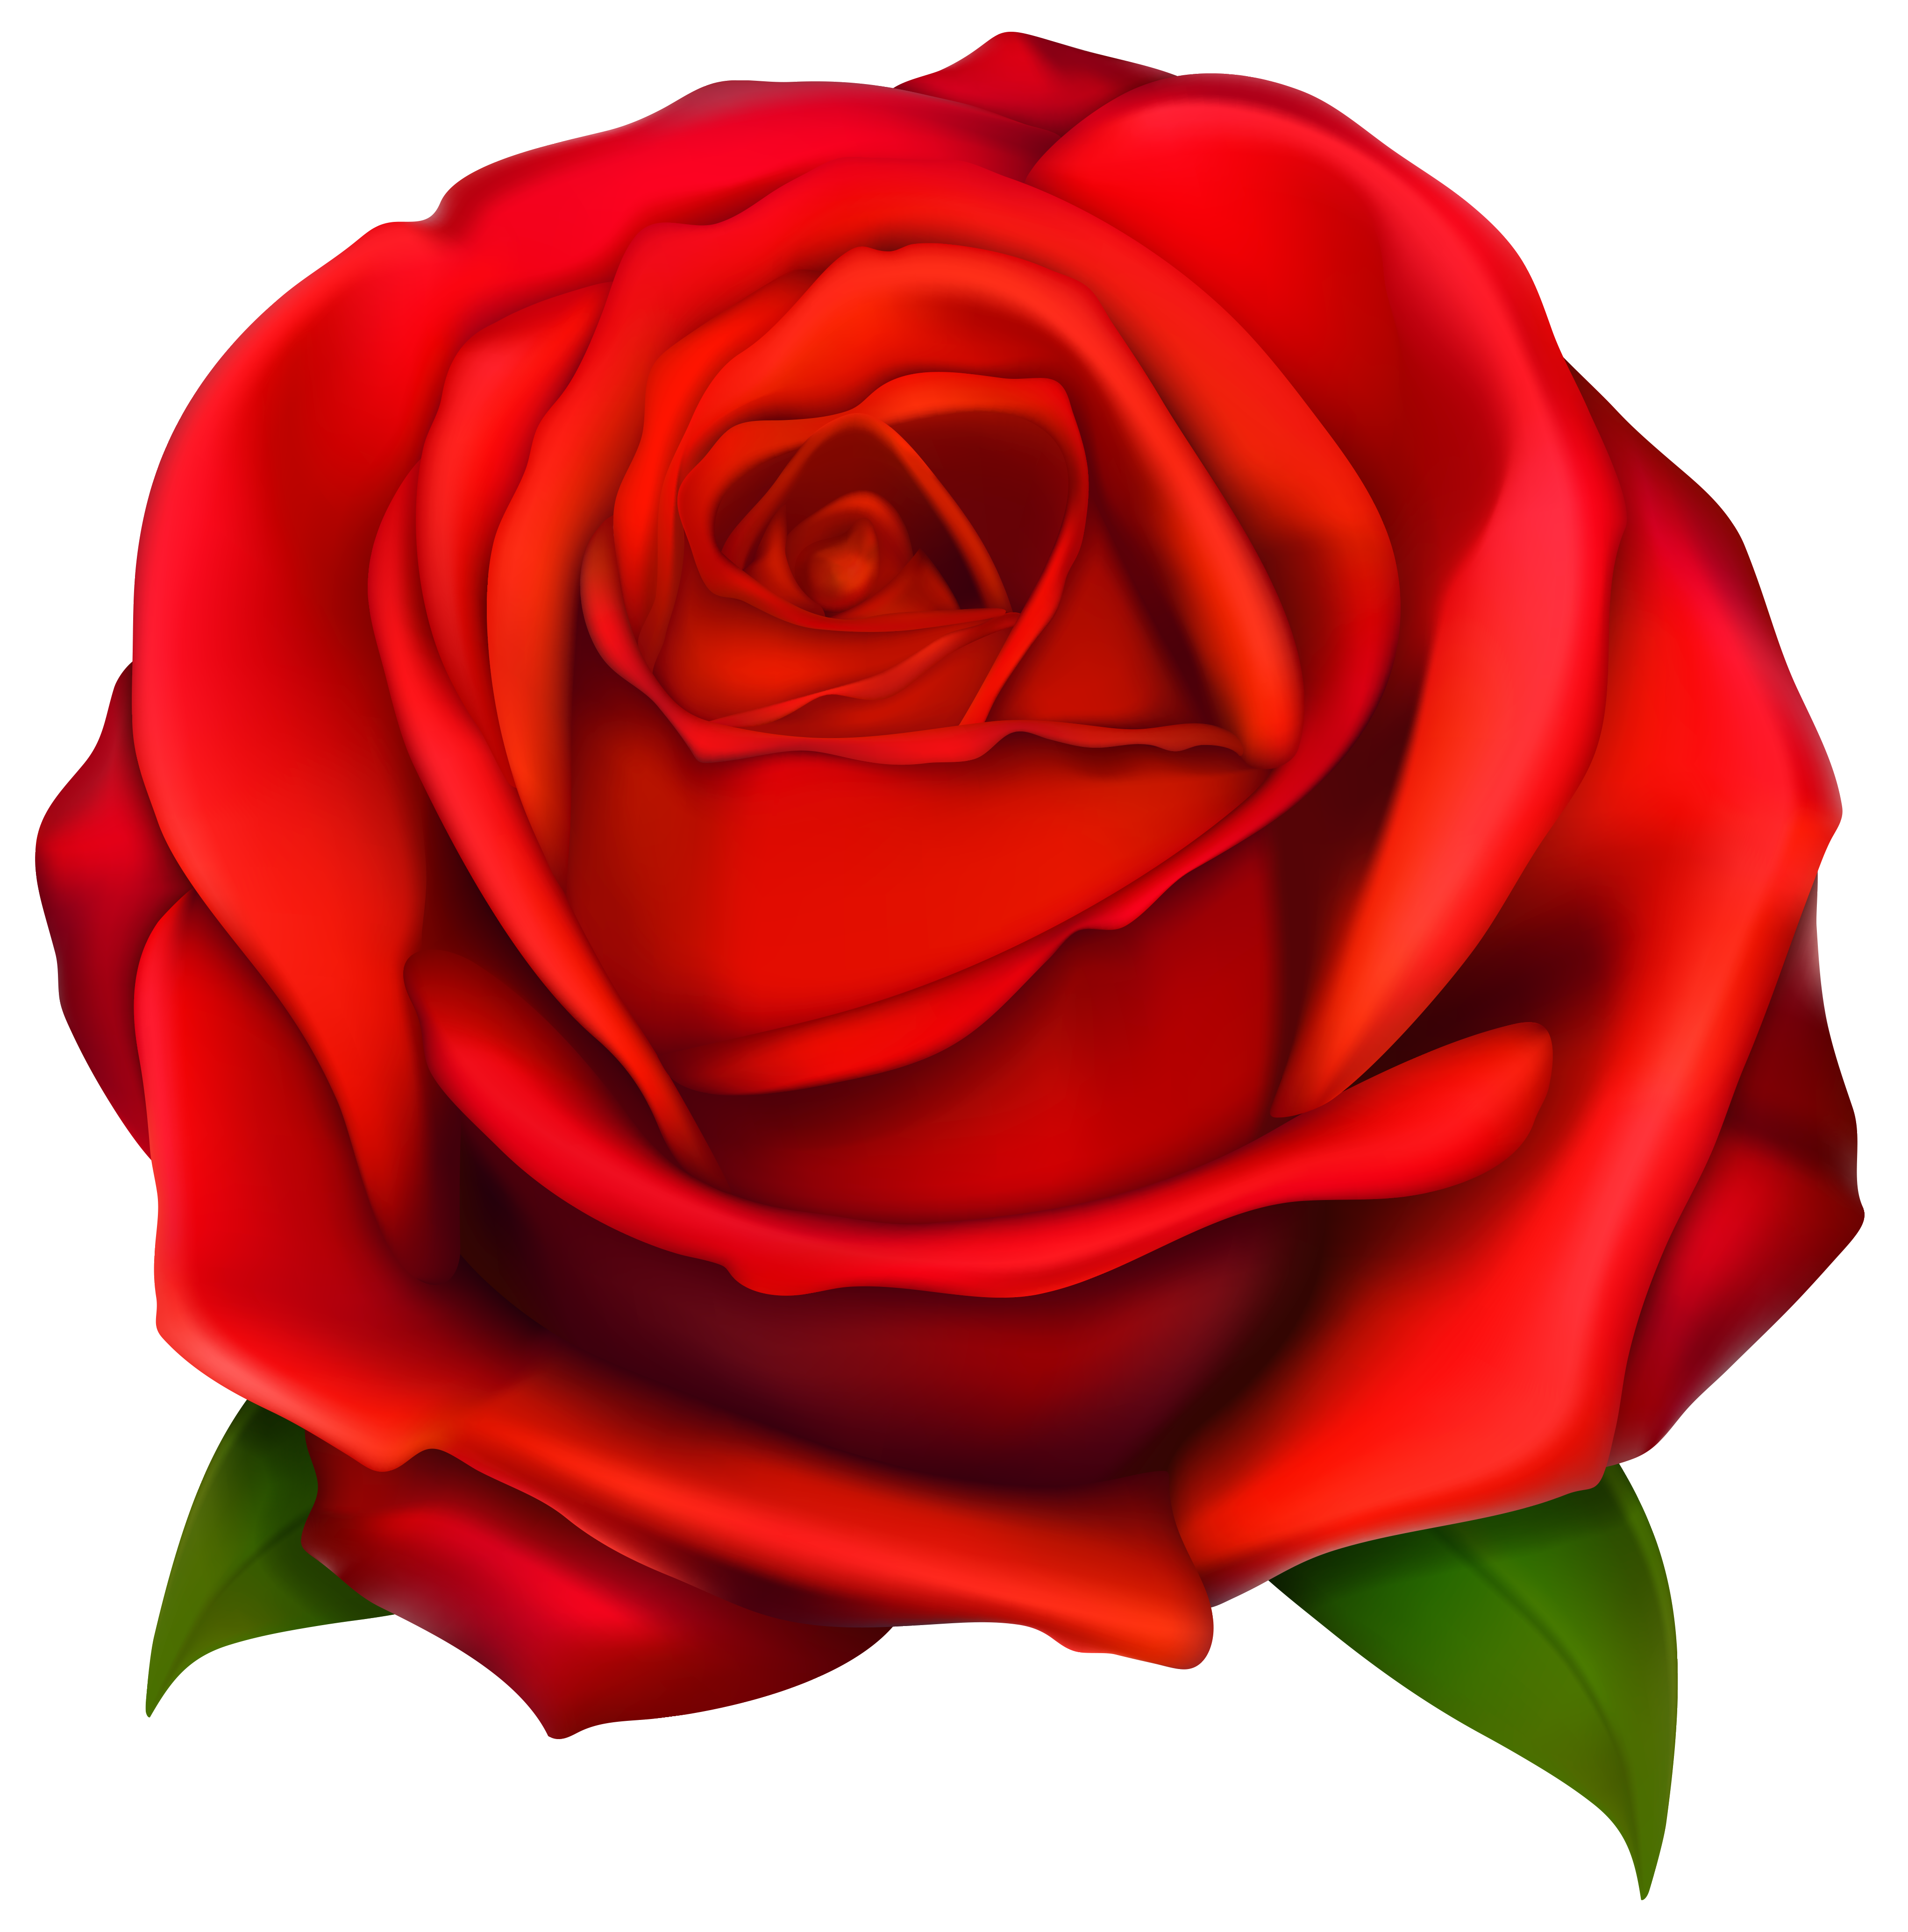 Rose clipart minimalist. Transparent red png gallery